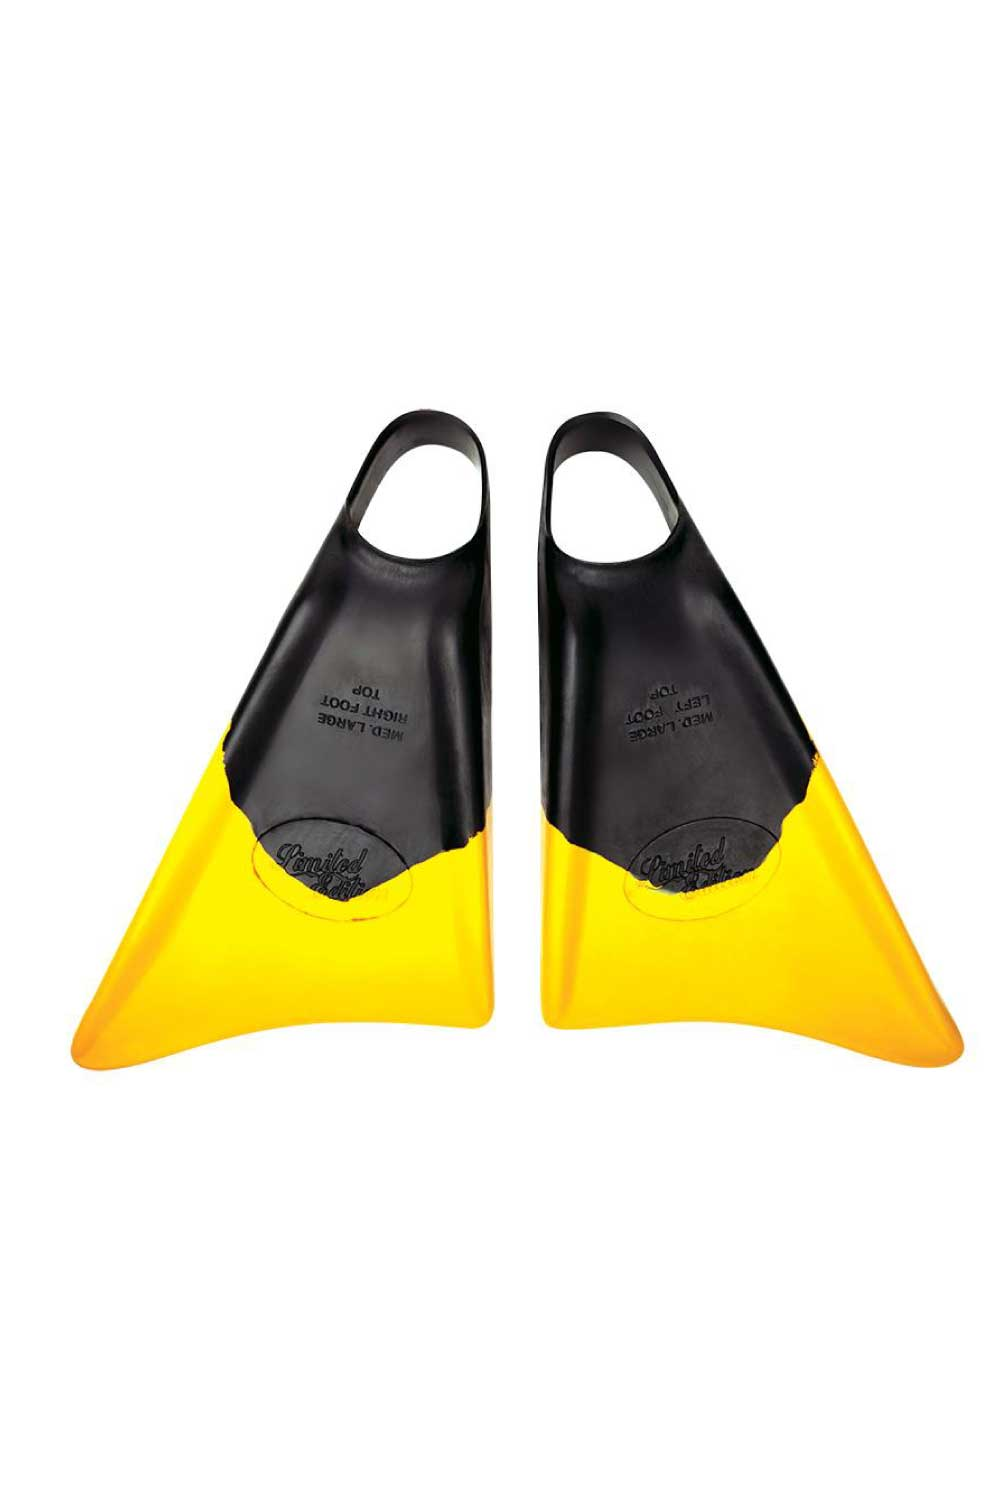 Limited Edition Bodyboard Fins Team Spec A